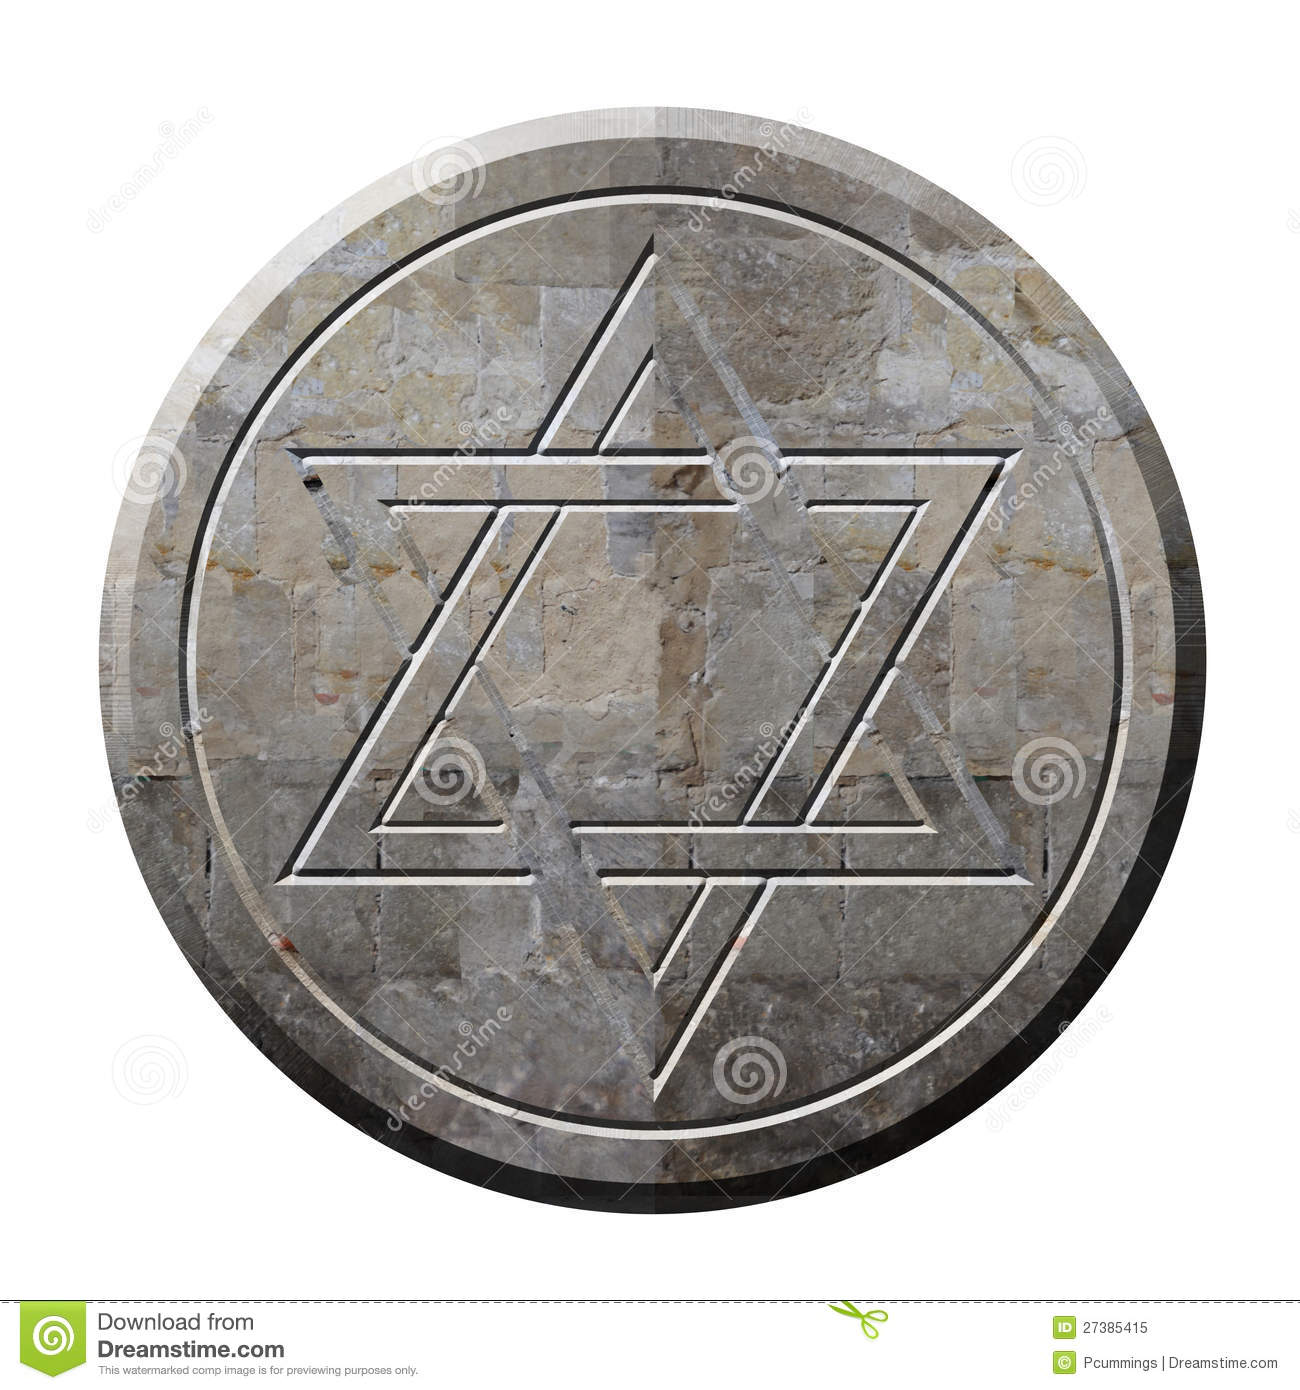 Star of david symbol in stone stock illustration illustration of star of david symbol in stone biocorpaavc Choice Image